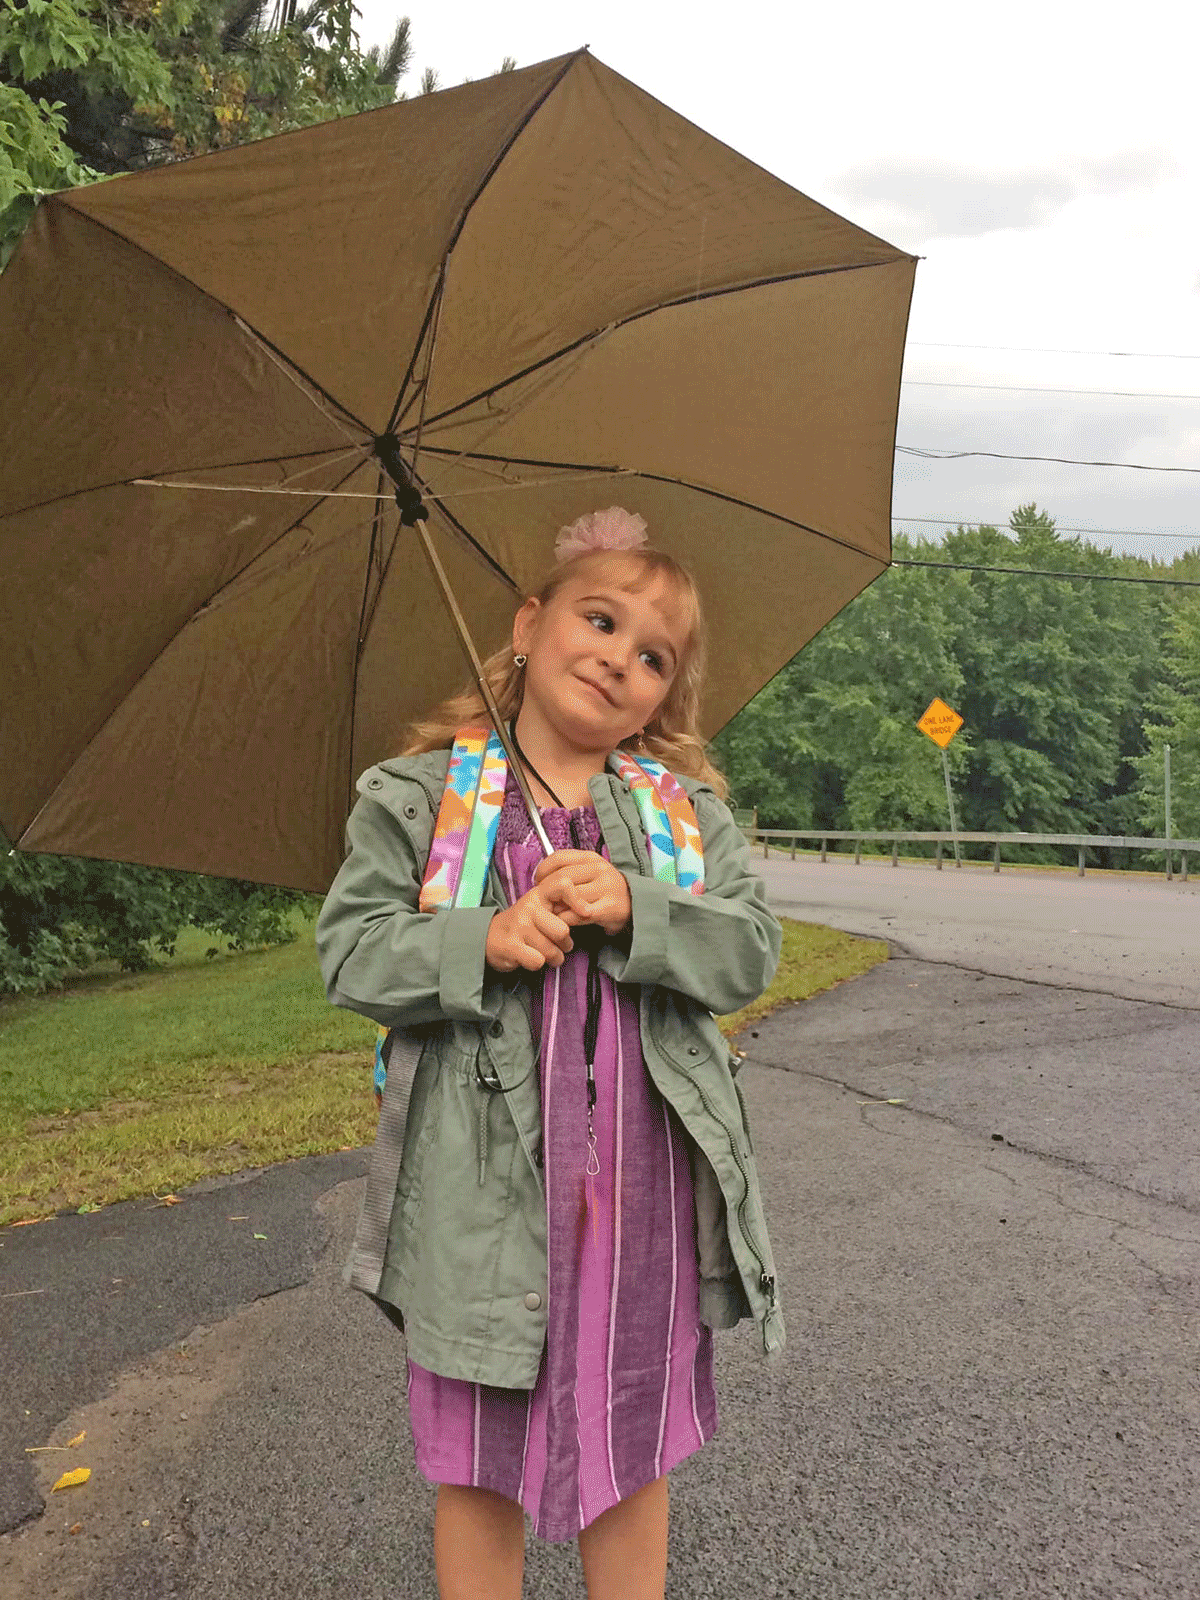 Hosanna Deon, 5, West Stockholm, waits in the rain for her first day of kindergarten at Lawrence Avenue Elementary School in Potsdam. Photo by her father, Chris Deon.